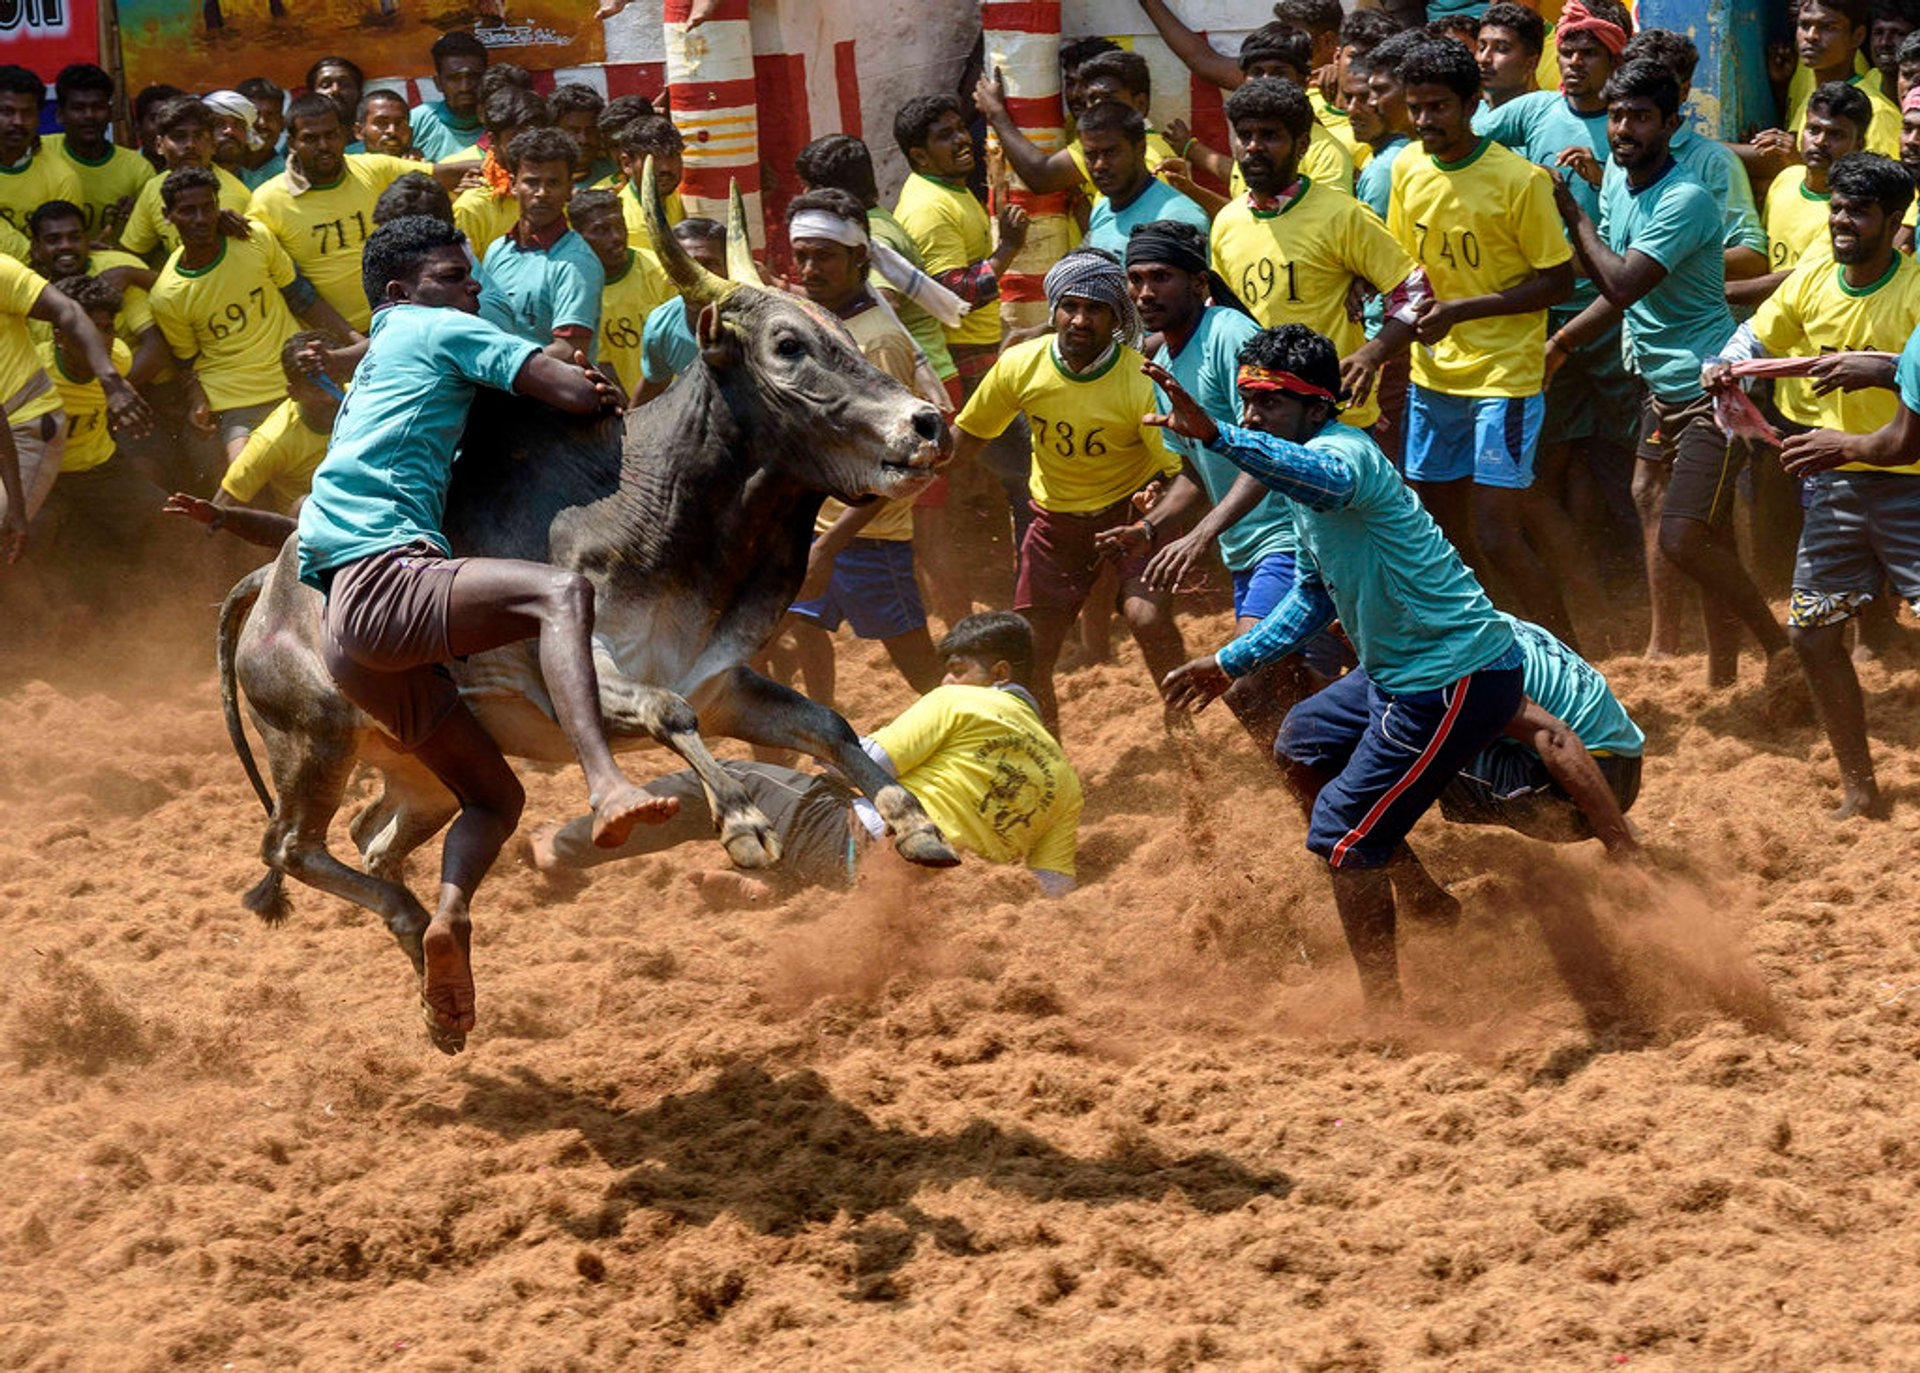 Best time to see Jallikattu in India 2020